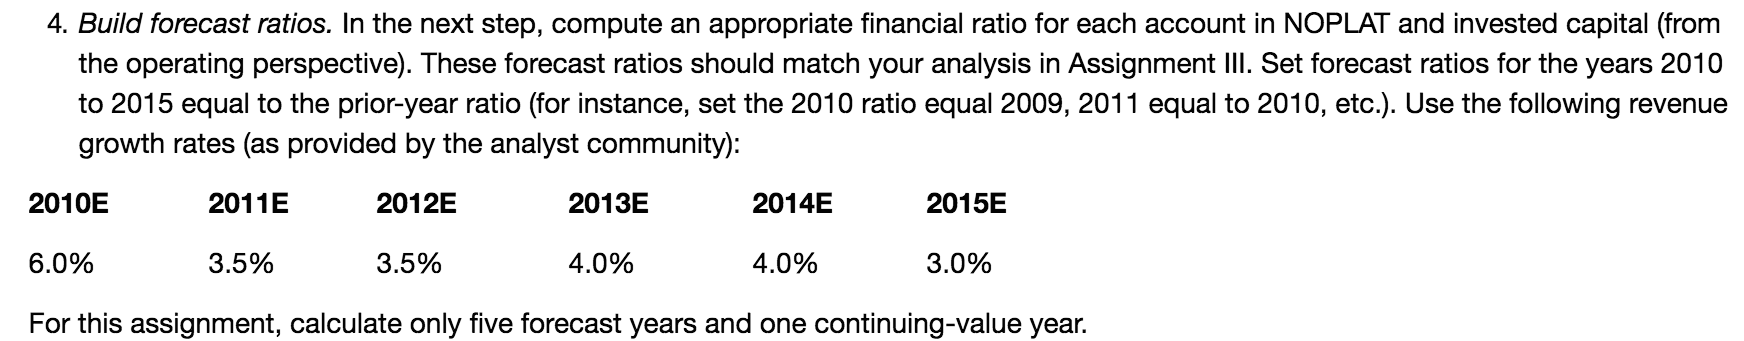 compute the following ratios for 2012 Familiarize yourself with the financial ratios for example, the current ratio equals current assets divided by current liabilities it measures a company's ability to pay its short-term bills and debt obligations.